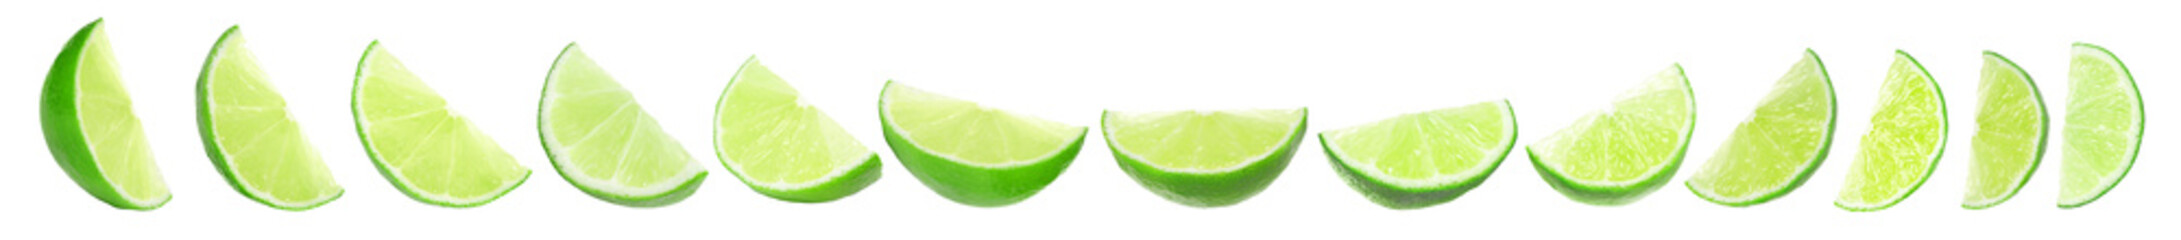 Set of juicy ripe limes on white background. Banner design Wall mural